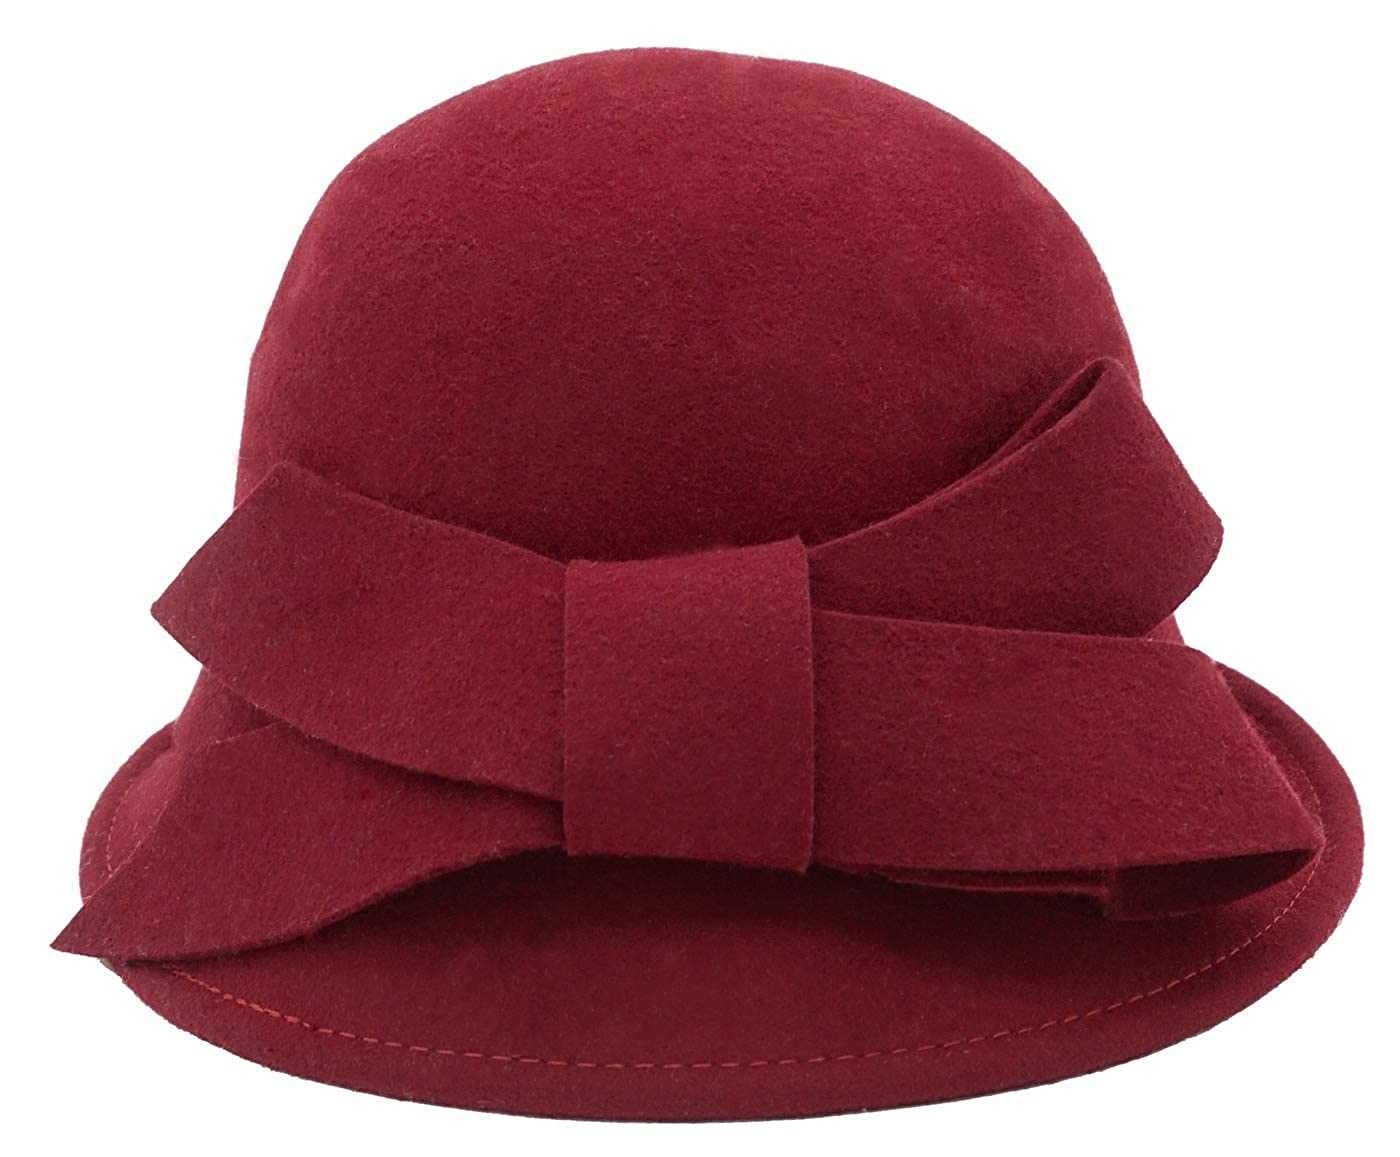 Women's Vintage Hats | Old Fashioned Hats | Retro Hats Bellady Women Solid Color Winter Hat 100% Wool Cloche Bucket with Bow Accent $20.99 AT vintagedancer.com